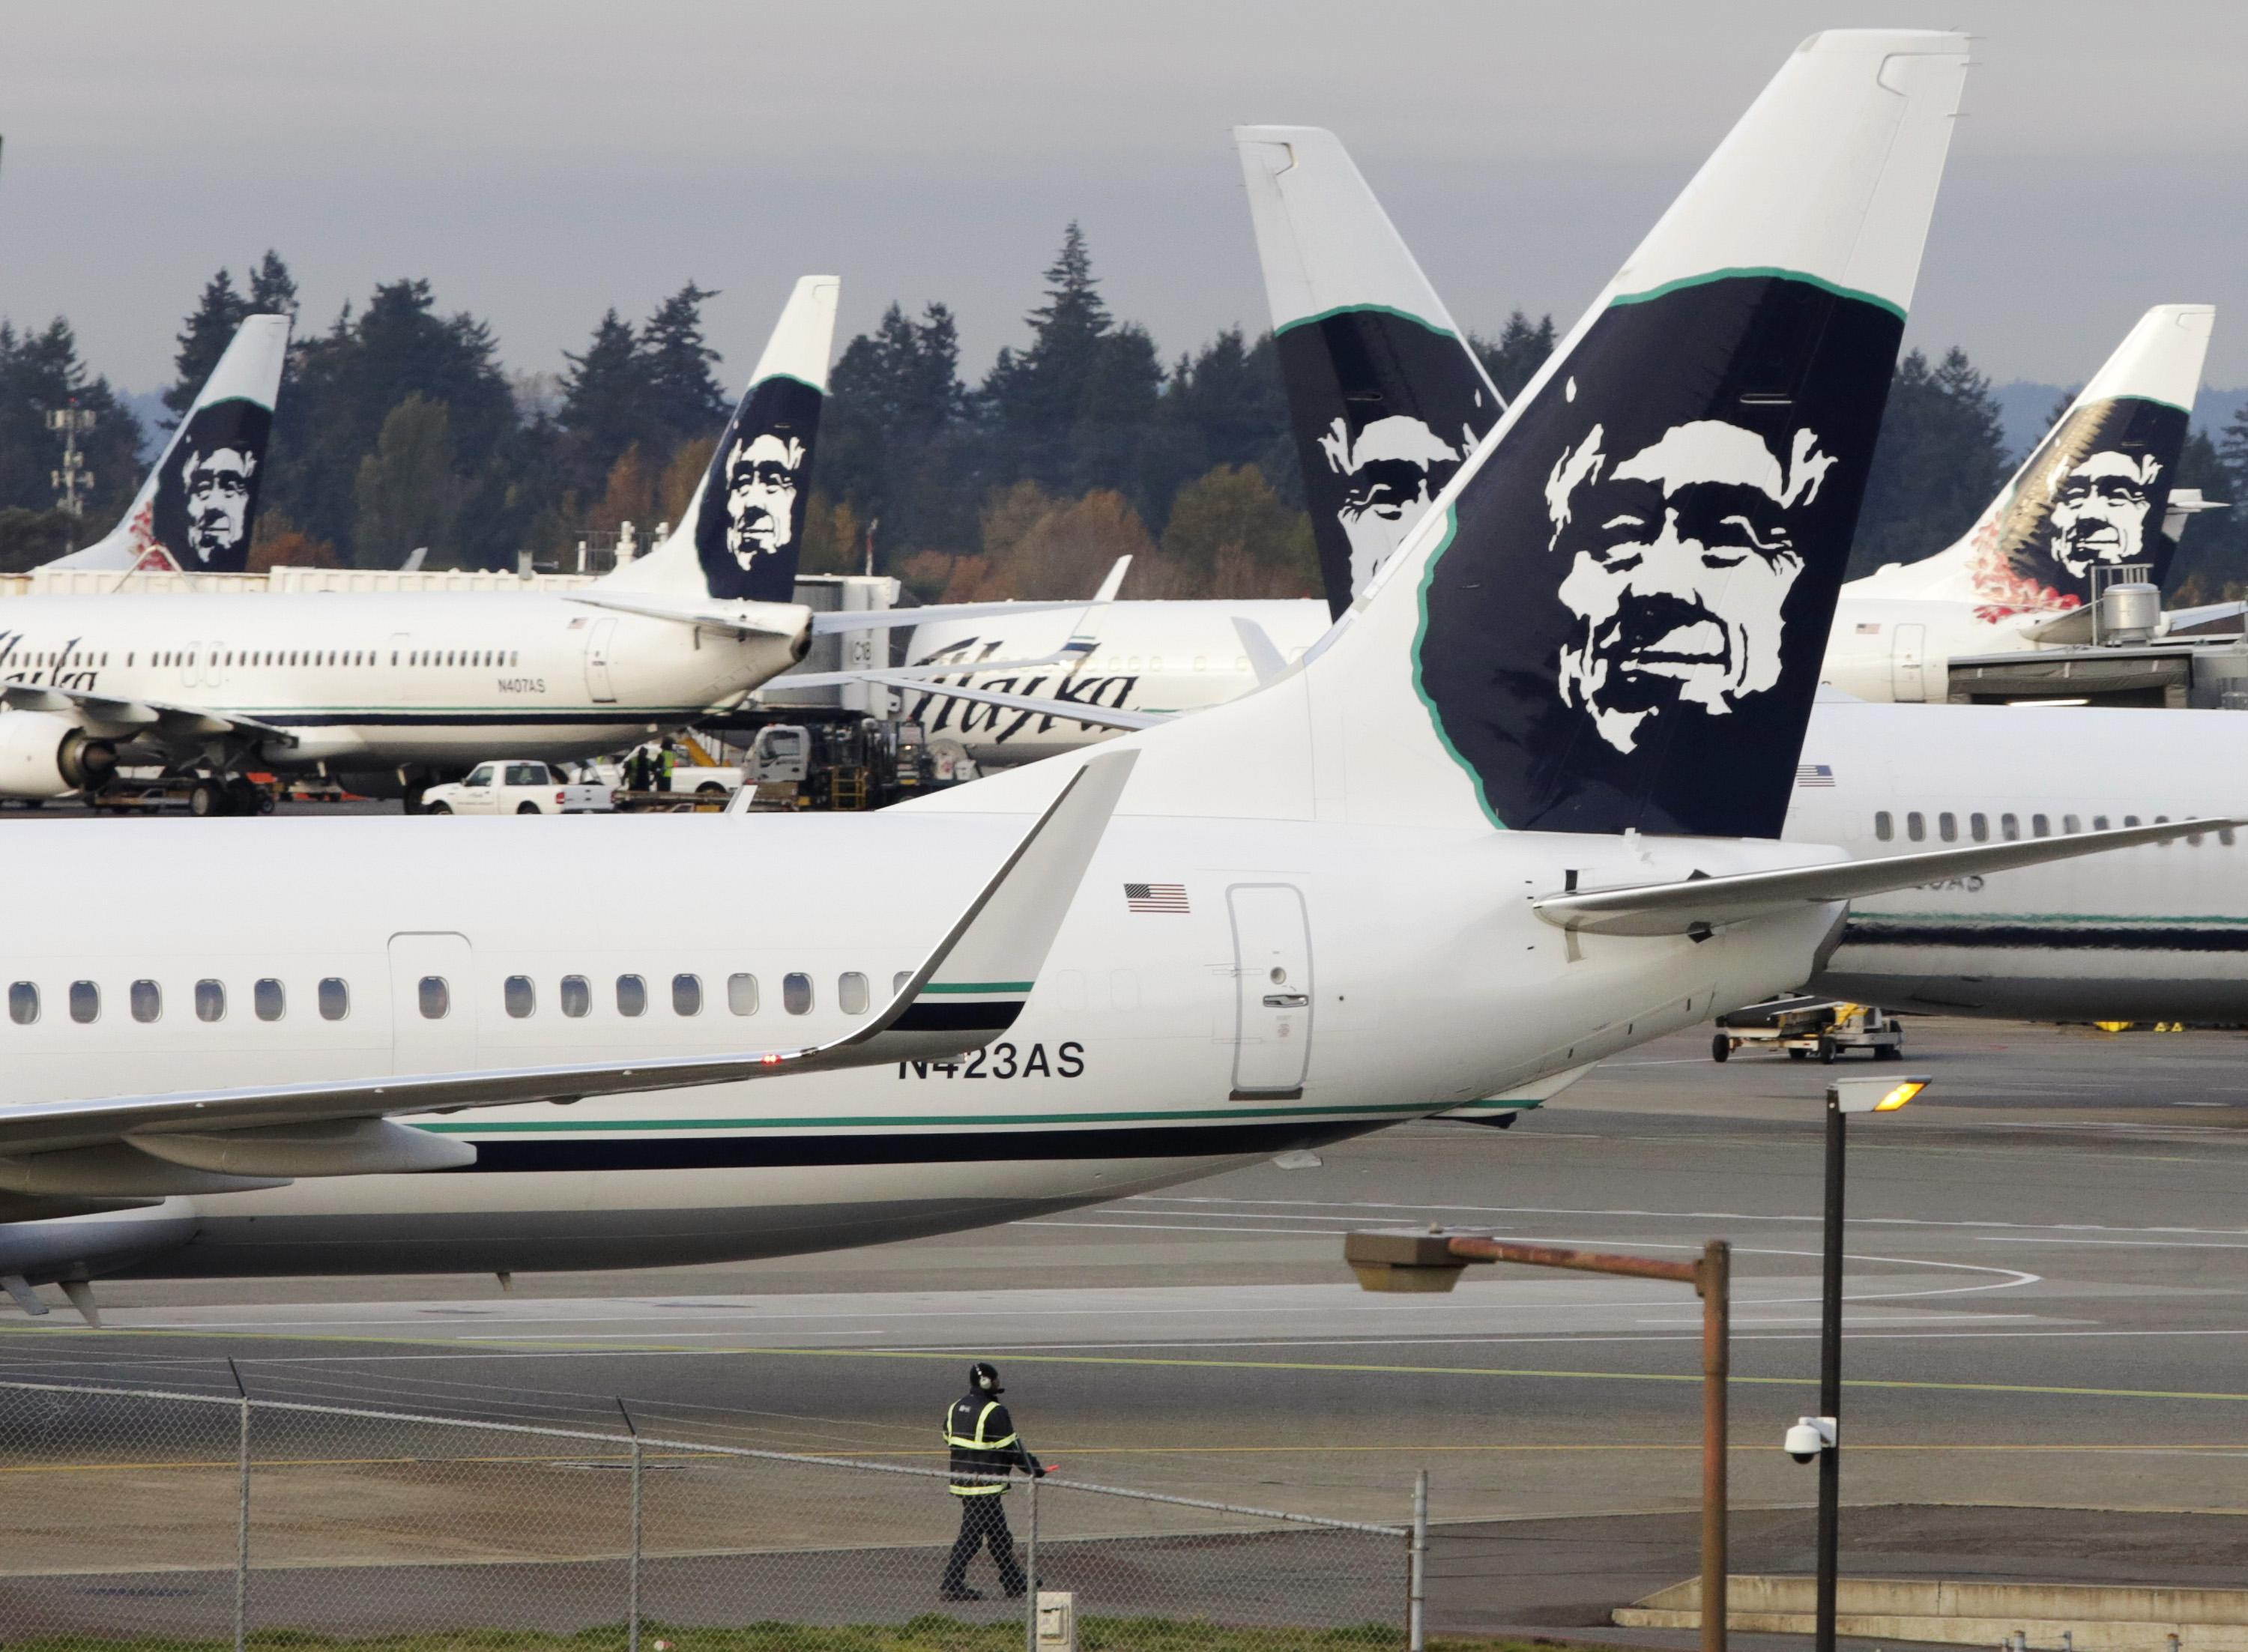 Naked passenger prompts Seattle-bound plane to return to Alaska